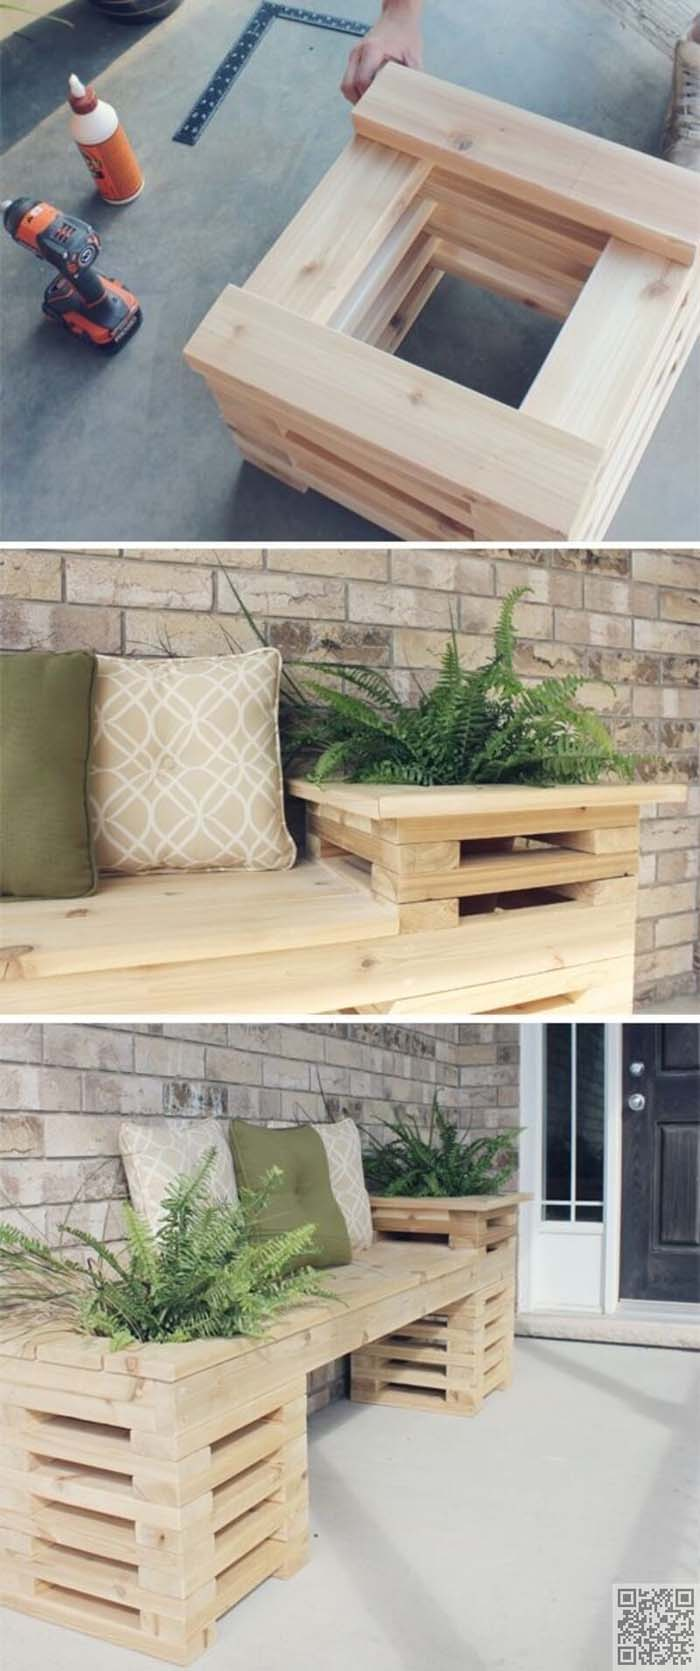 Plant Boxes with Built-in Bench #garden #container #planter #decorhomeideas